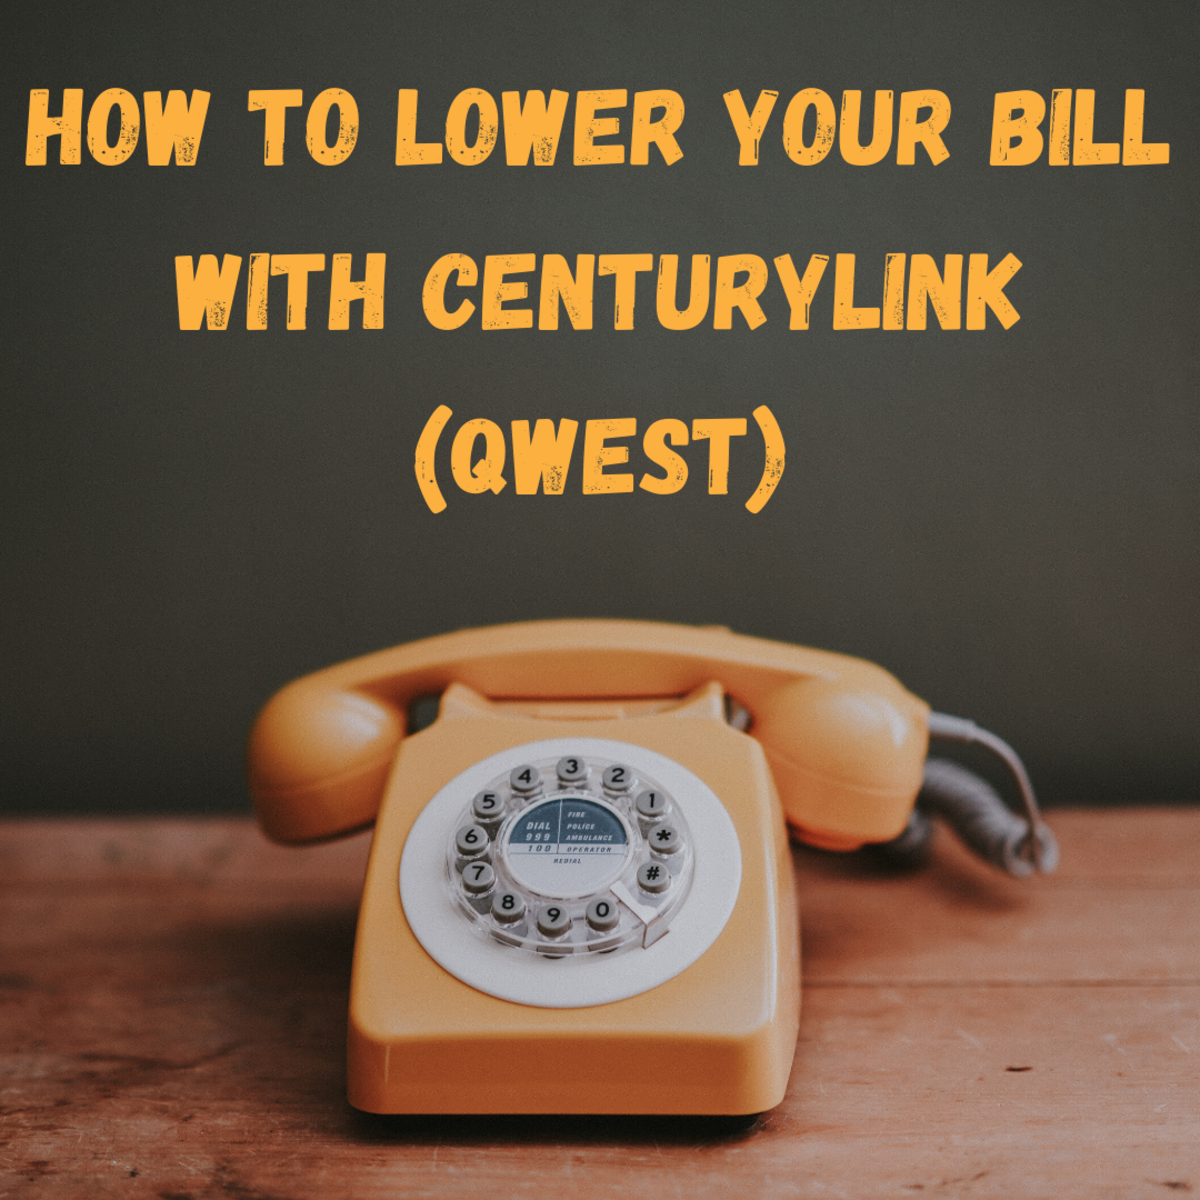 How to Lower Your Internet or Phone Bill with CenturyLink (Qwest)